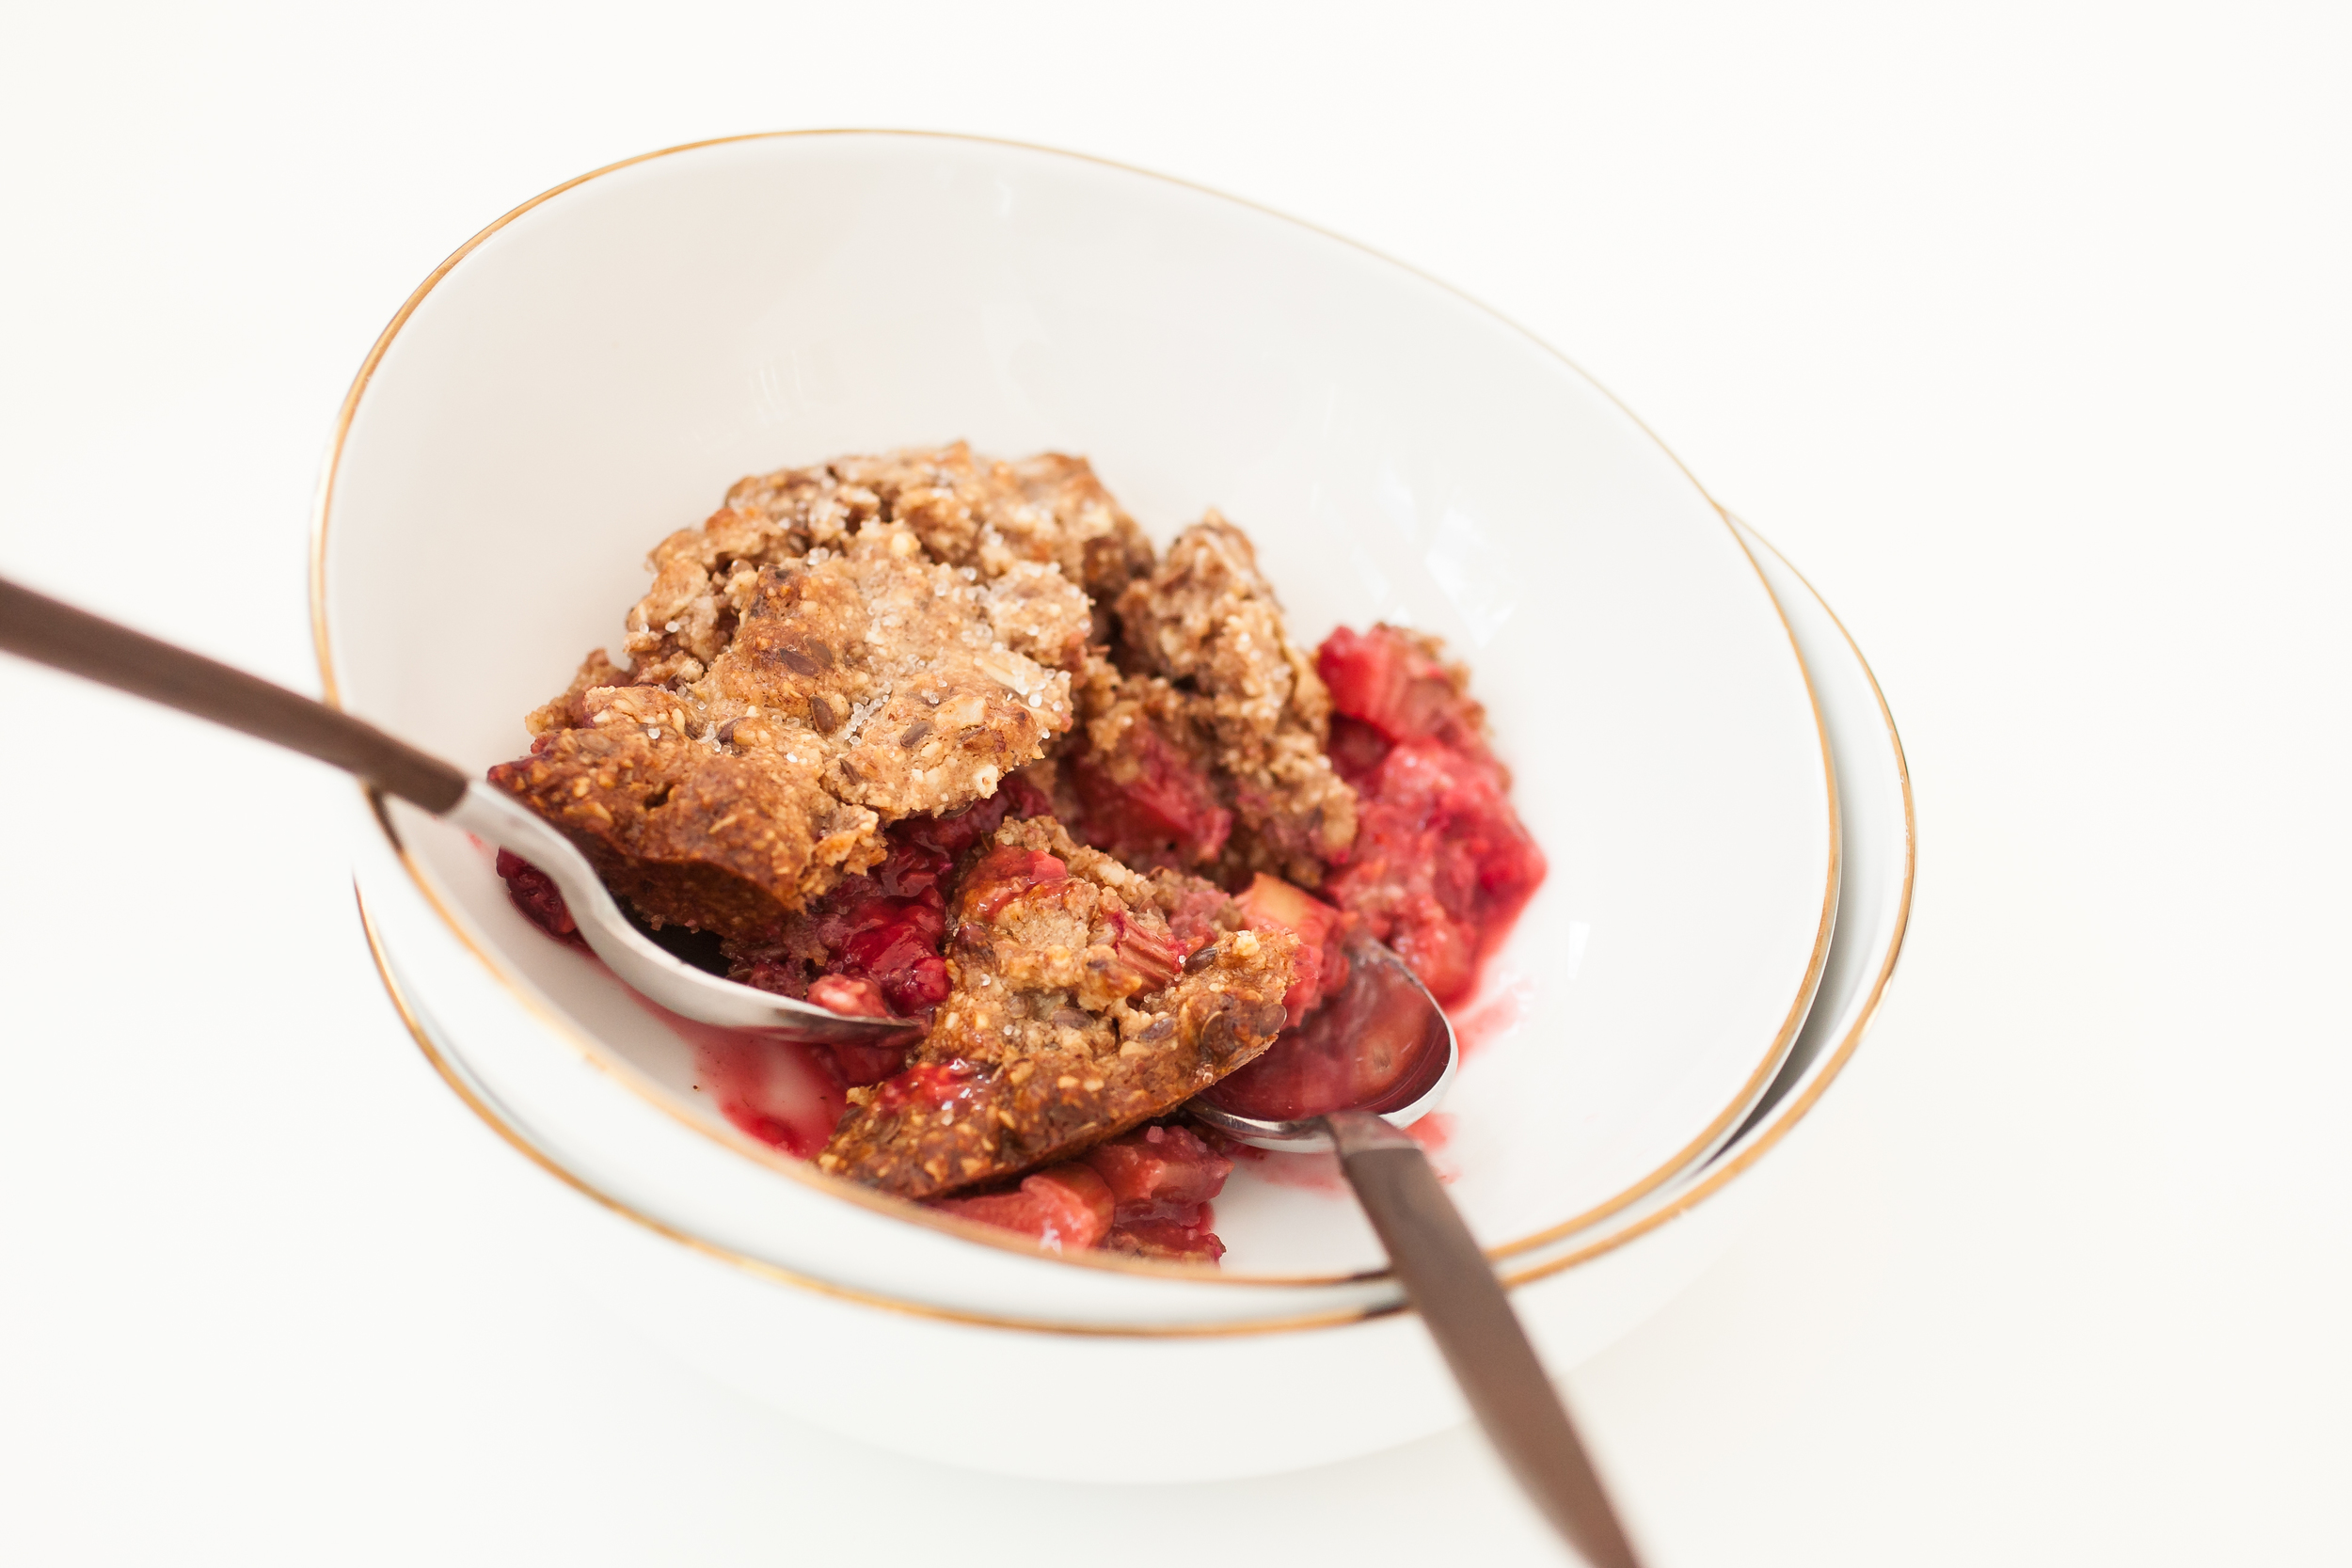 Produce On Parade - Rhubarb & Raspberry Nut Crisp - Taking advantage of the backyard bounty, this is healthy and deliciously tart and sweet crisp is a breeze to whip up. Oats and nuts lend their nutrition to make one scrumptious dessert, bursting with sweet and juicy raspberries and puckering rhubarb.